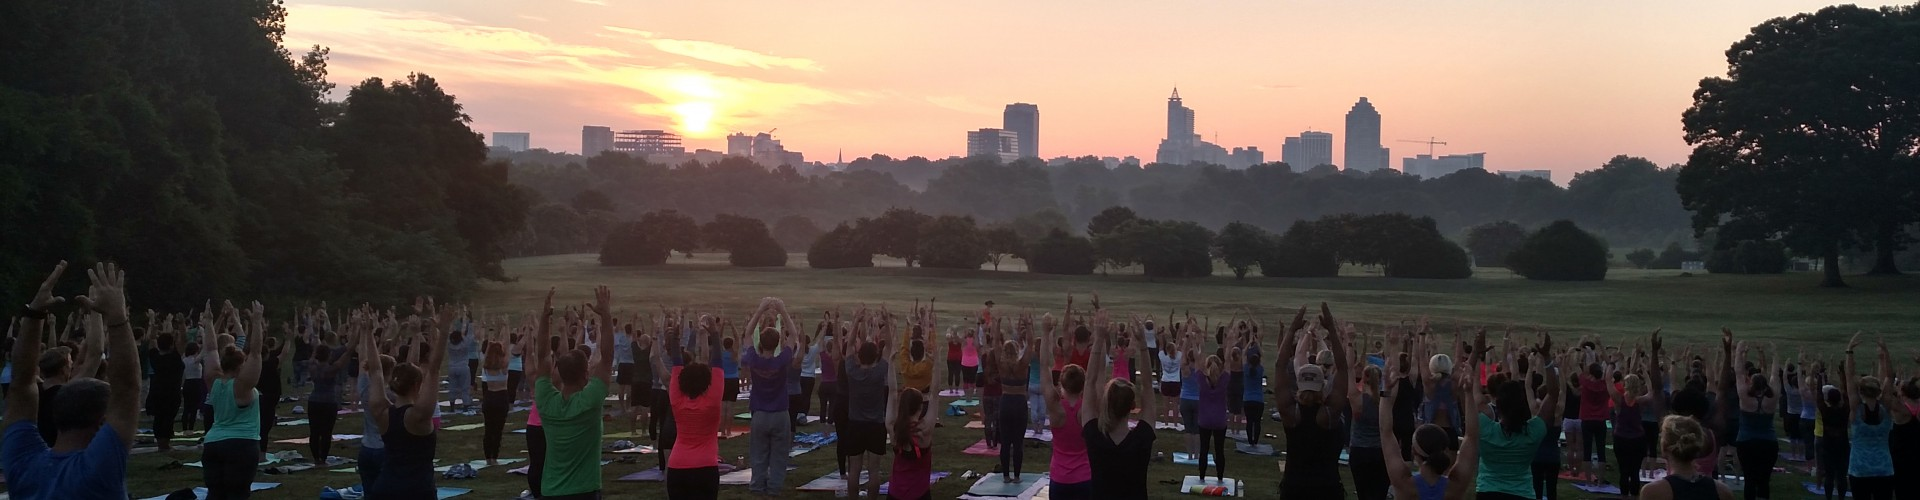 Crowd of people doing yoga in a field at Dix Park with the sun rising in the background